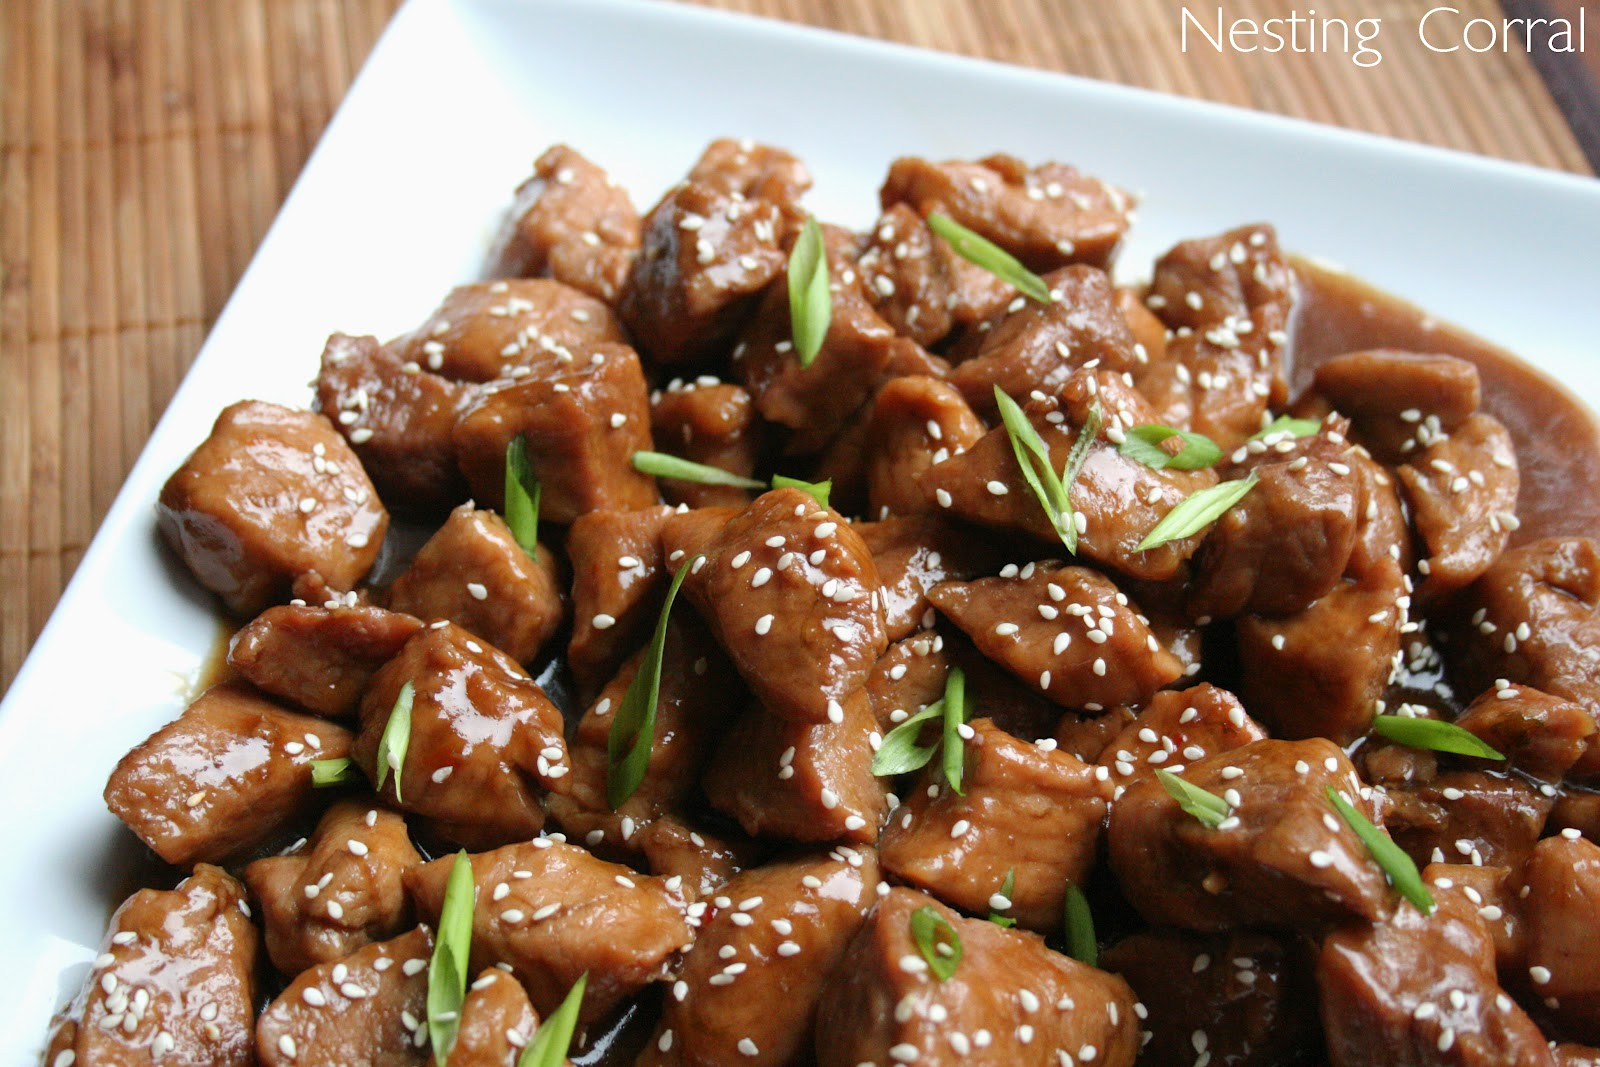 The Nesting Corral: Braised Pork in Sweet Soy Sauce